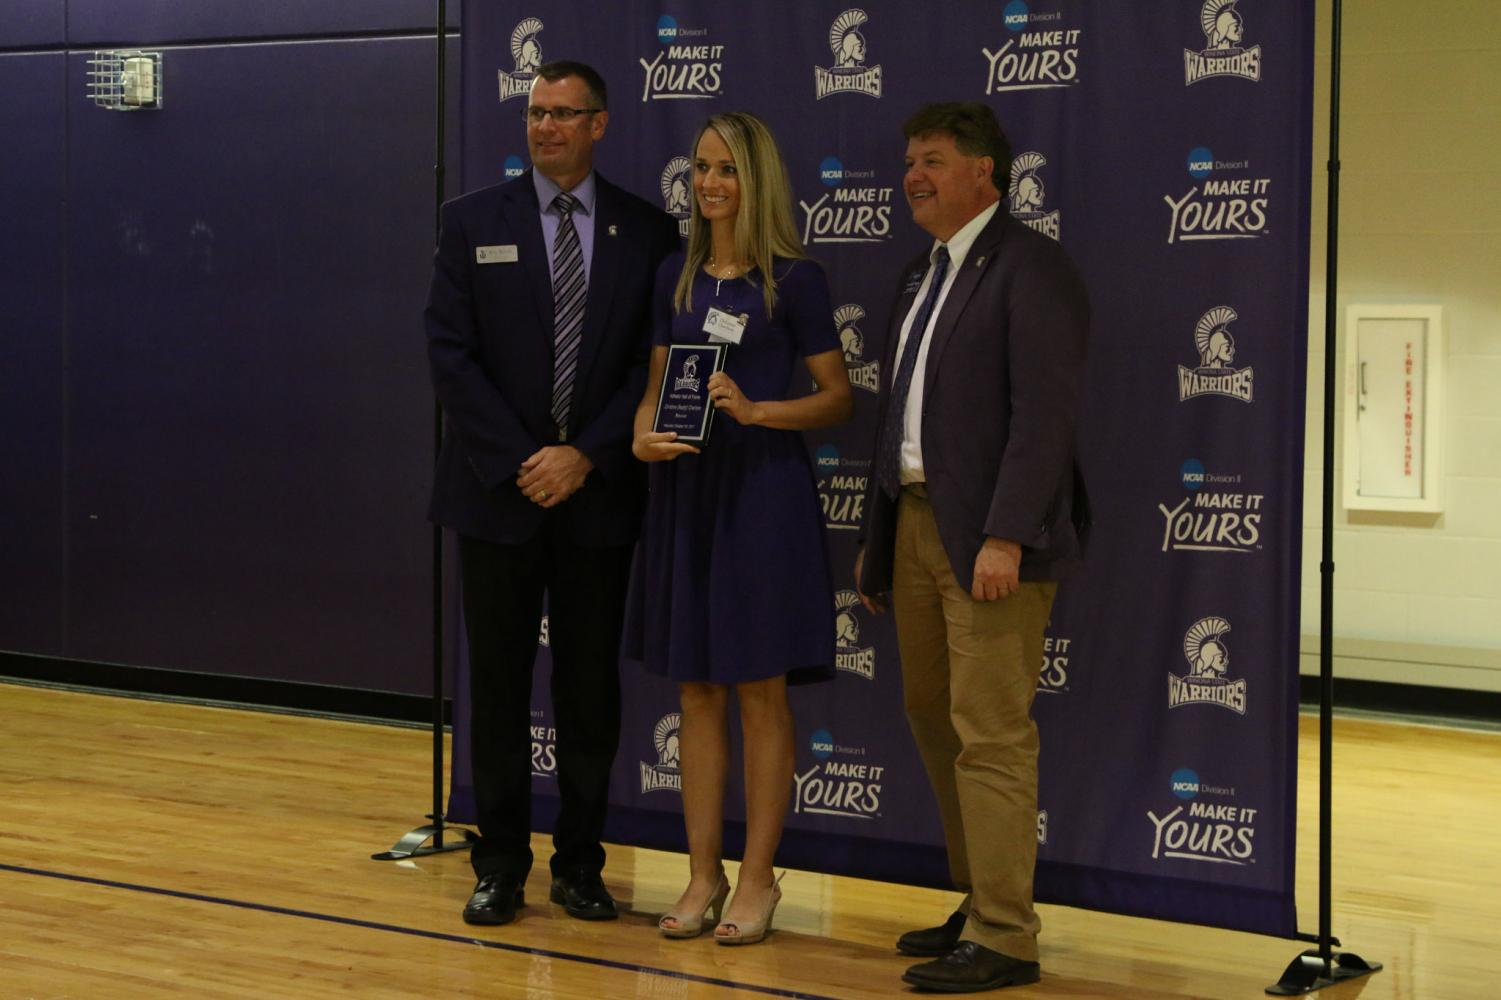 Emily (King) Callender, a former soccer player and the class of 2008, stands with the Athletic Director, Eric Schoh, and President Scott Olson as she is inducted into the Winona State Hall of Fame.